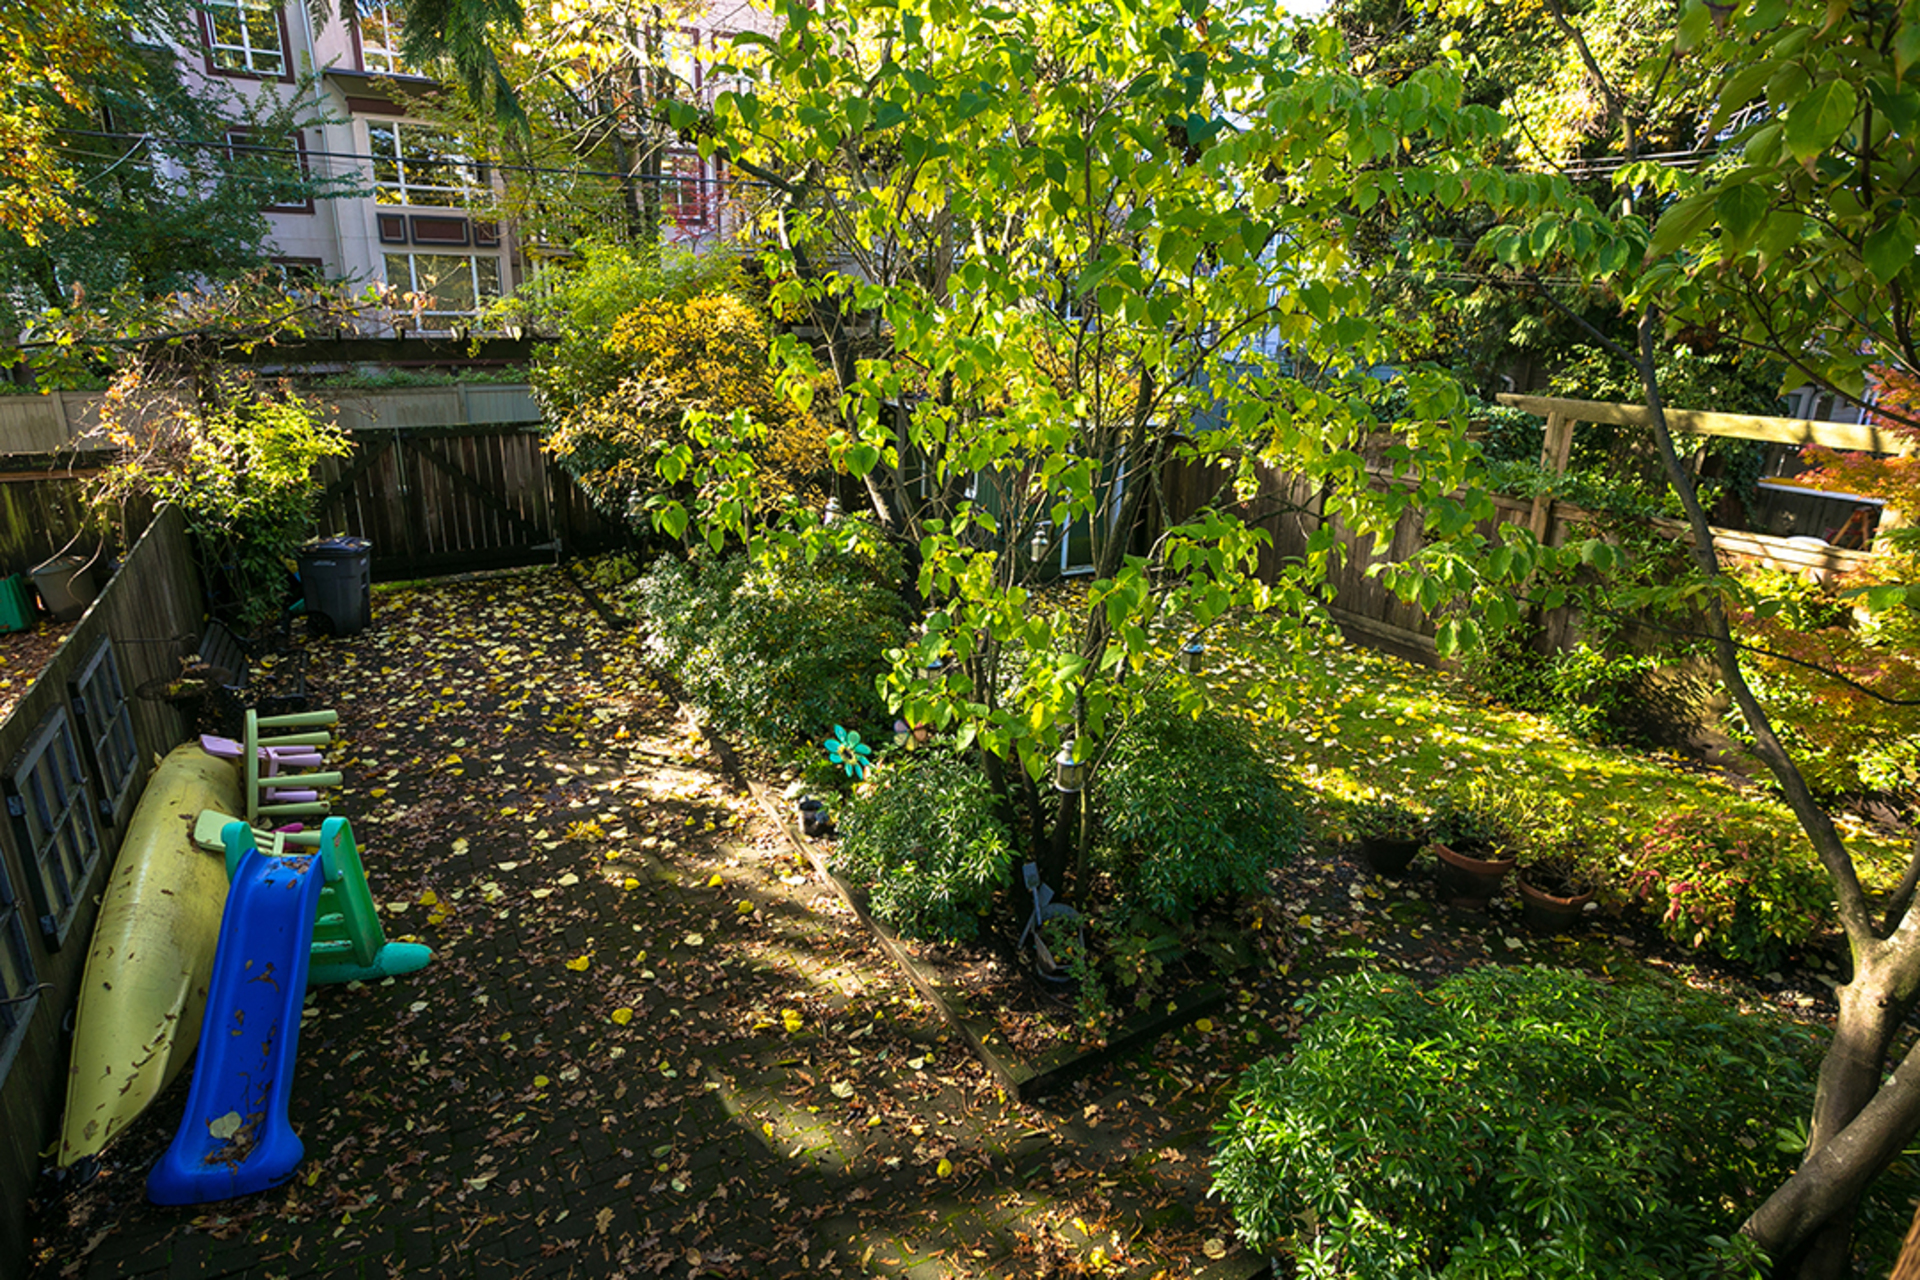 20191022-1J6A9691-1 at 3228 West 3rd Avenue, Kitsilano, Vancouver West